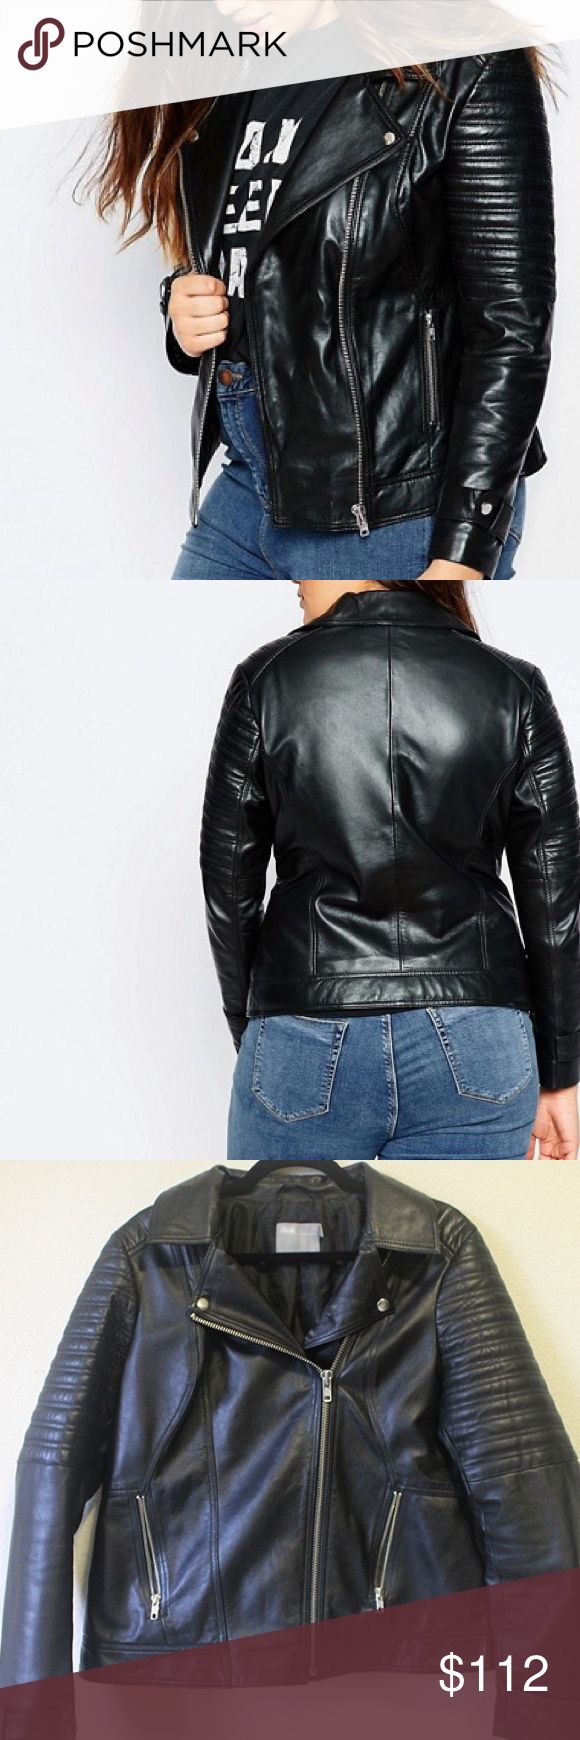 Asos Leather Motorcycle Jacket Fully-lined matte leather jacket with moto-inspired detailing. Quilted sleeve panels, zip pockets, cuff snaps. I love this thing, it's just a bit too big for me. Super versatile. Makes you look badass. ASOS Jackets & Coats